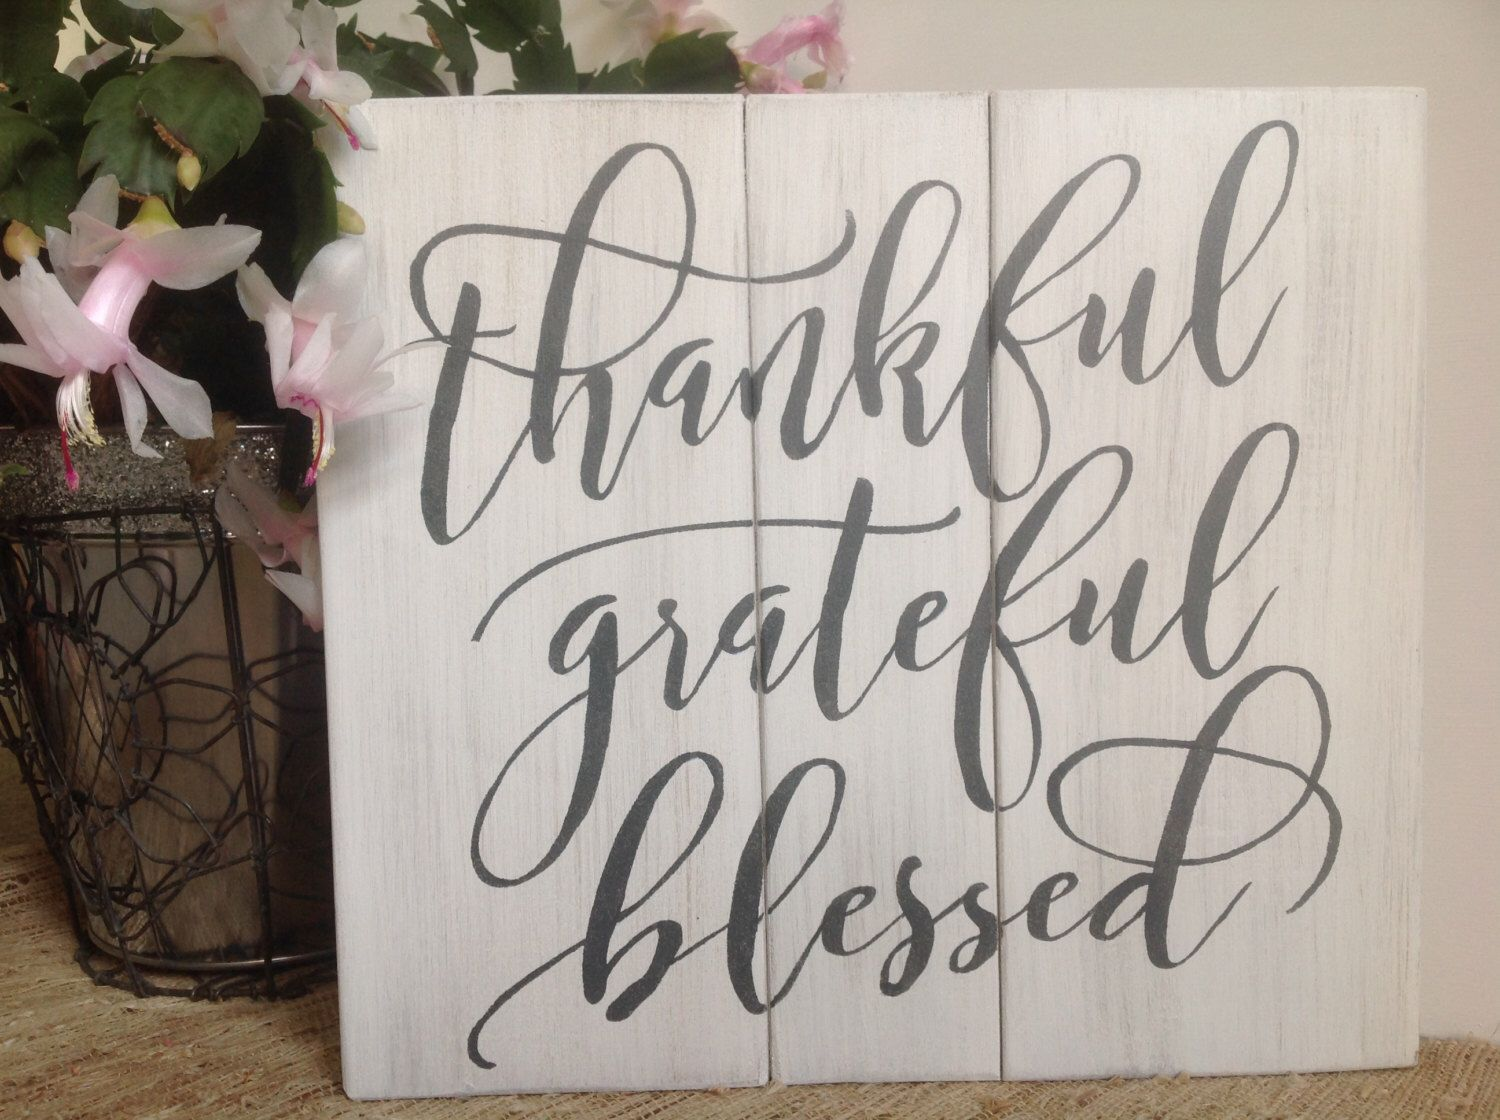 Thankful grateful blessed wood sign pallet sign rustic spiritual thankful grateful blessed wood sign pallet sign rustic spiritual distressed wood sign home decor wall art amipublicfo Images